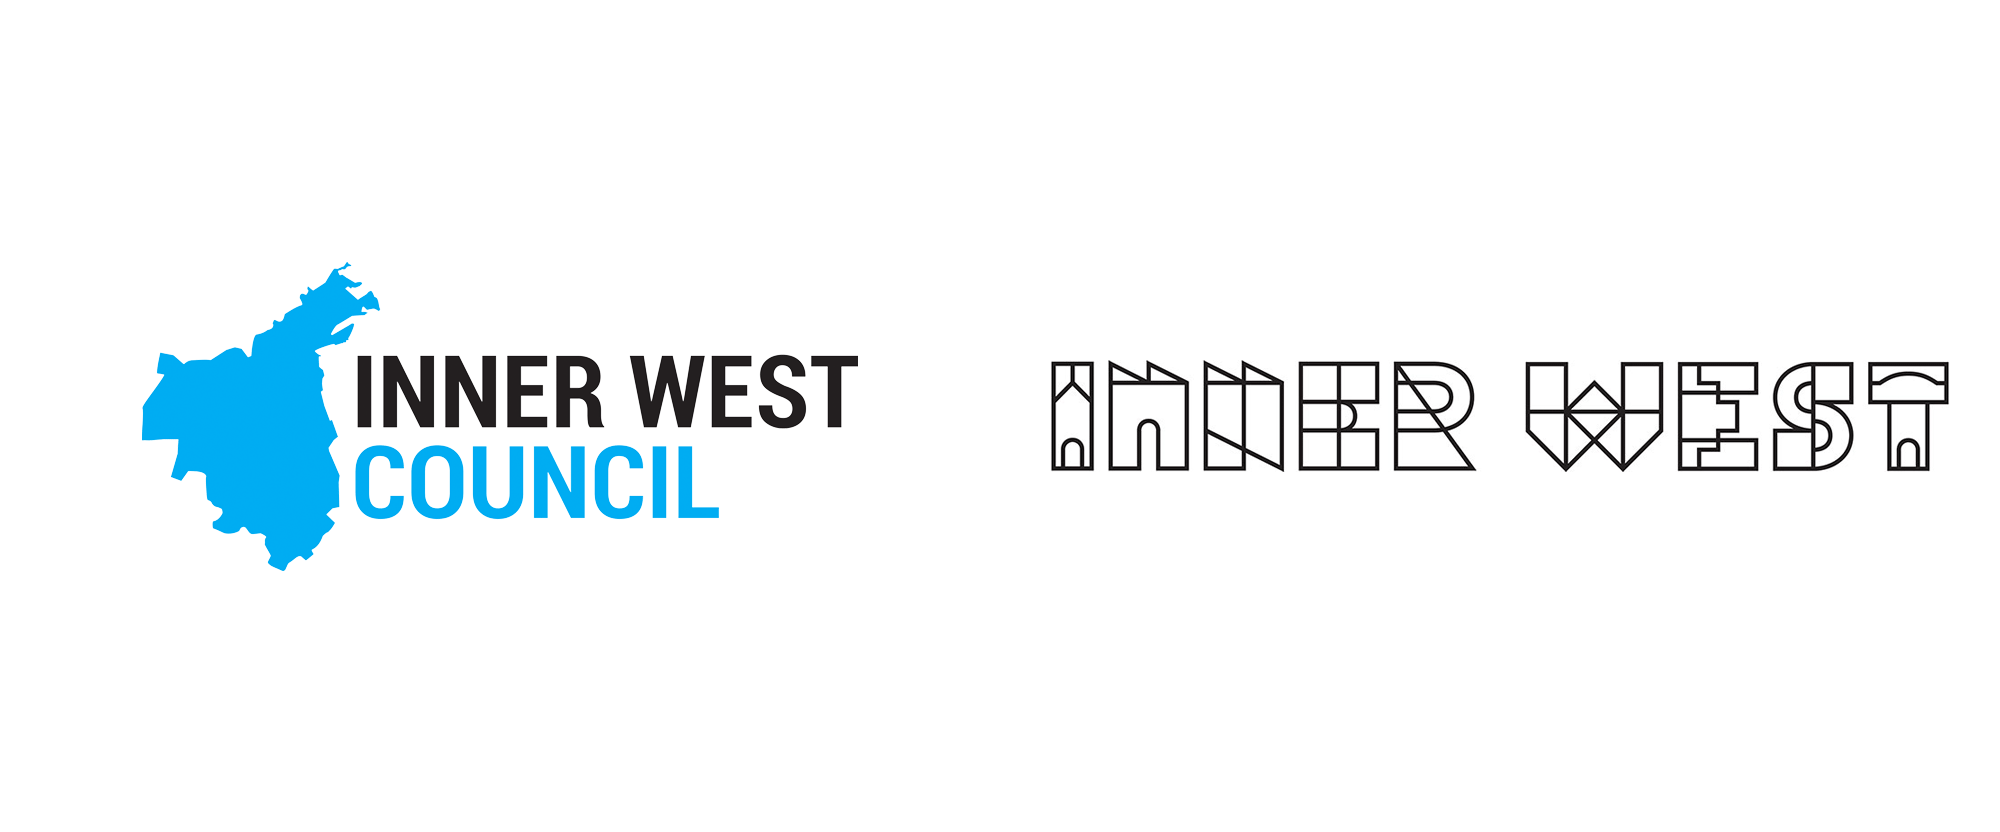 New Logo and Identity for Inner West Council by For The People